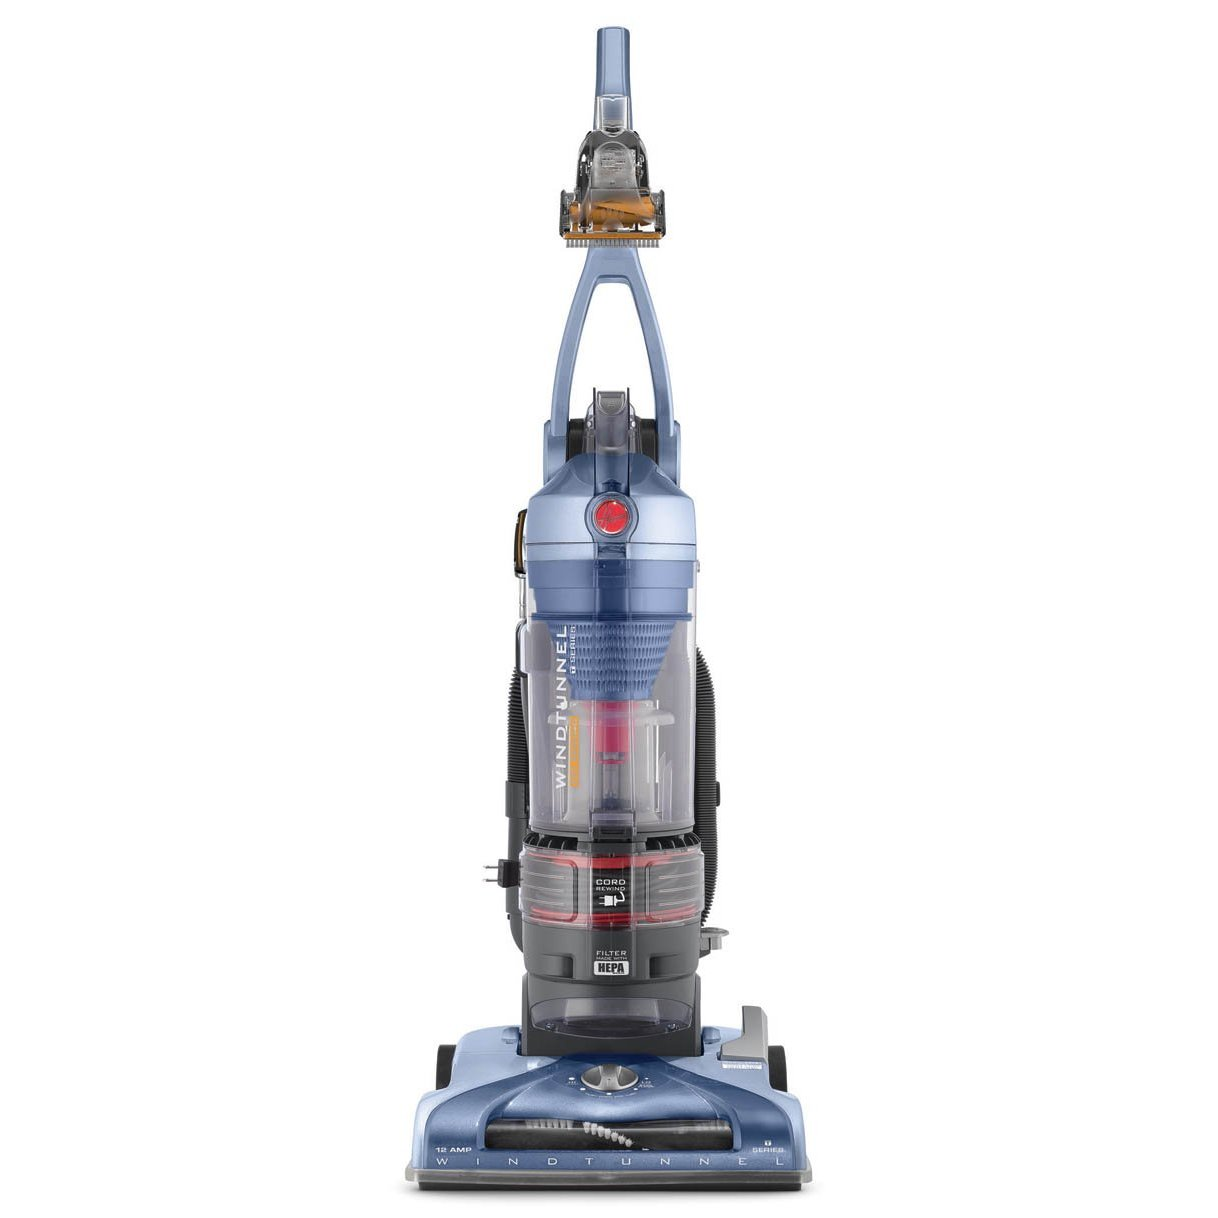 Hoover WindTunnel T-Series Pet Rewind Plus Upright Vacuum, Bagless, UH70210 Review